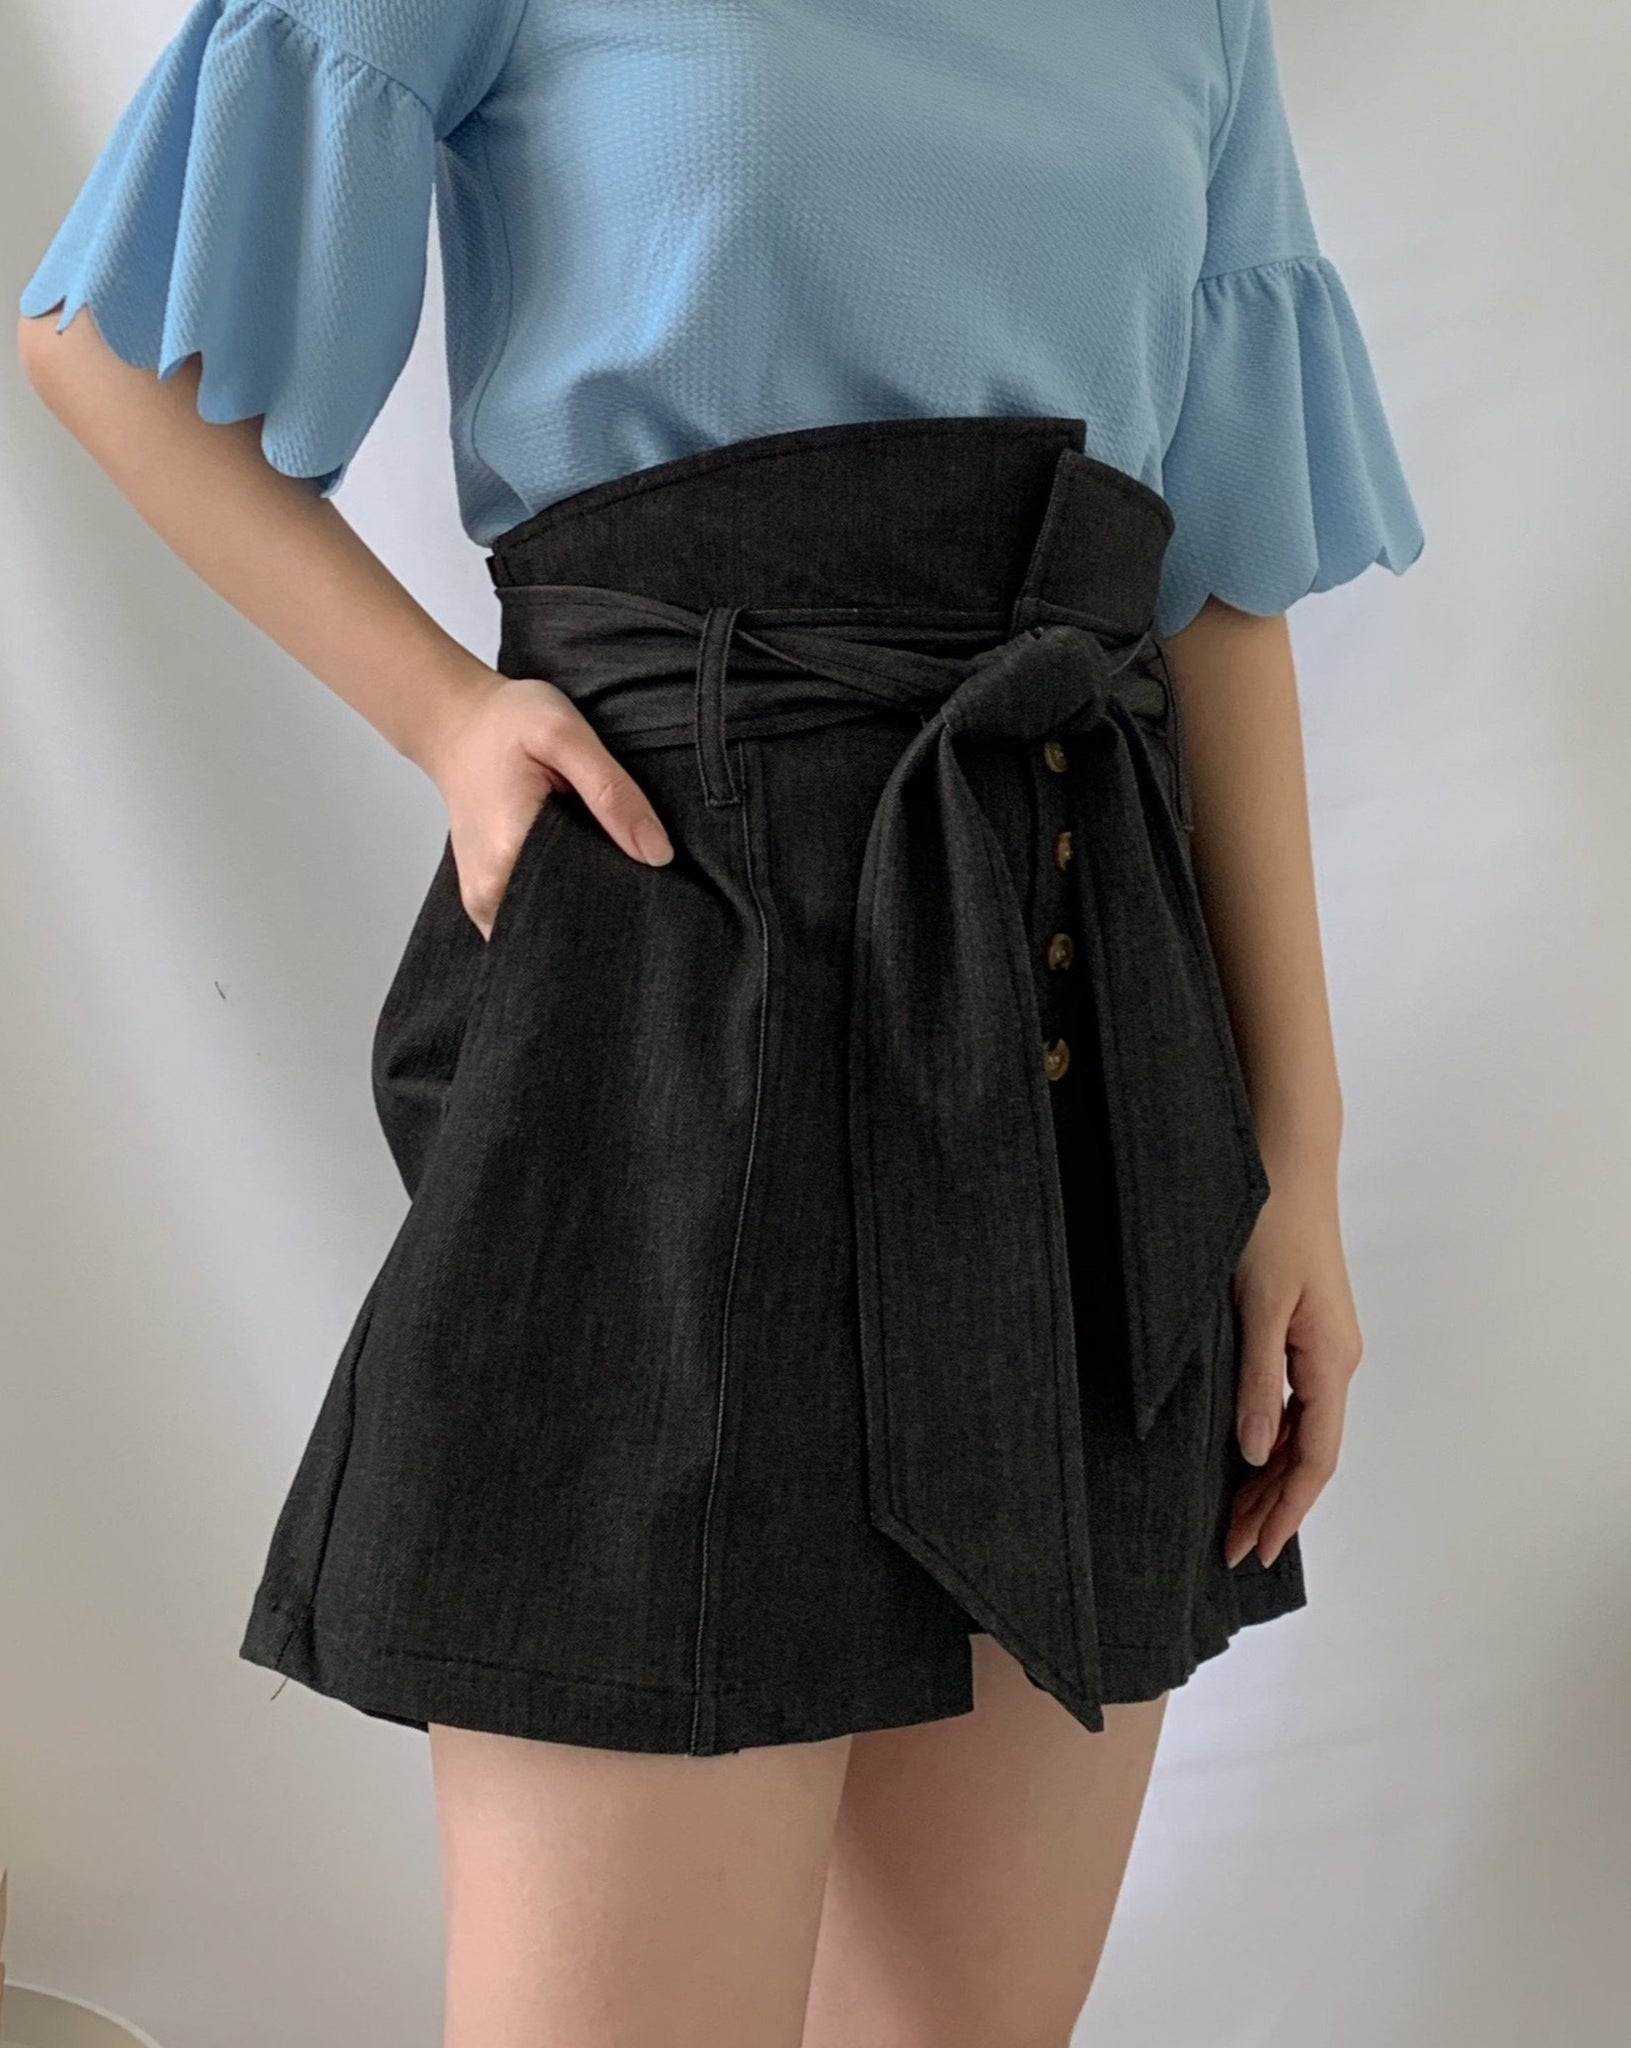 Marnie Shorts Black (58258)